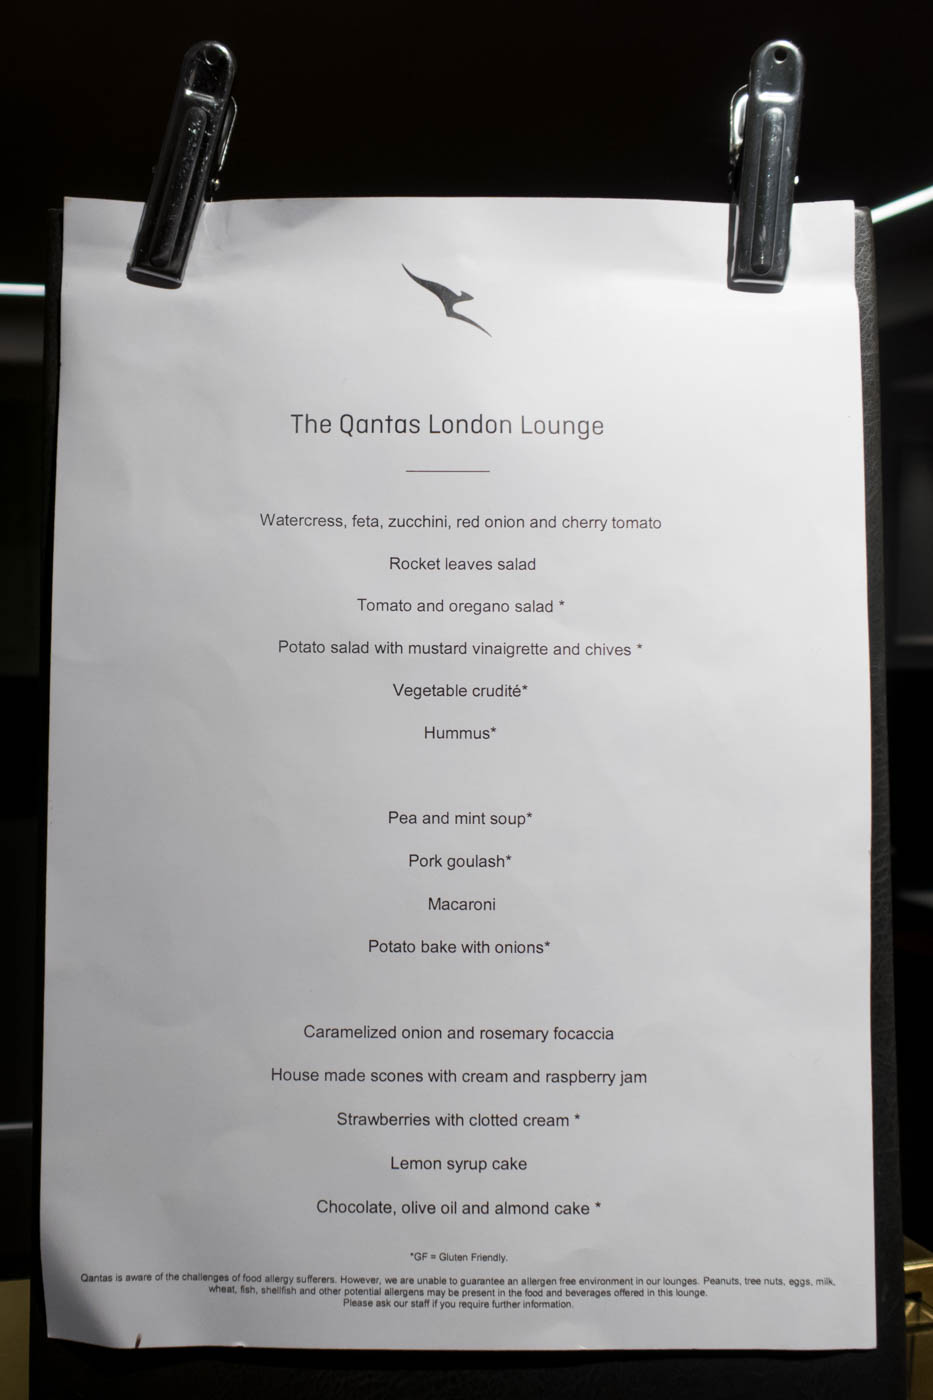 The Qantas London Lounge Buffet Items